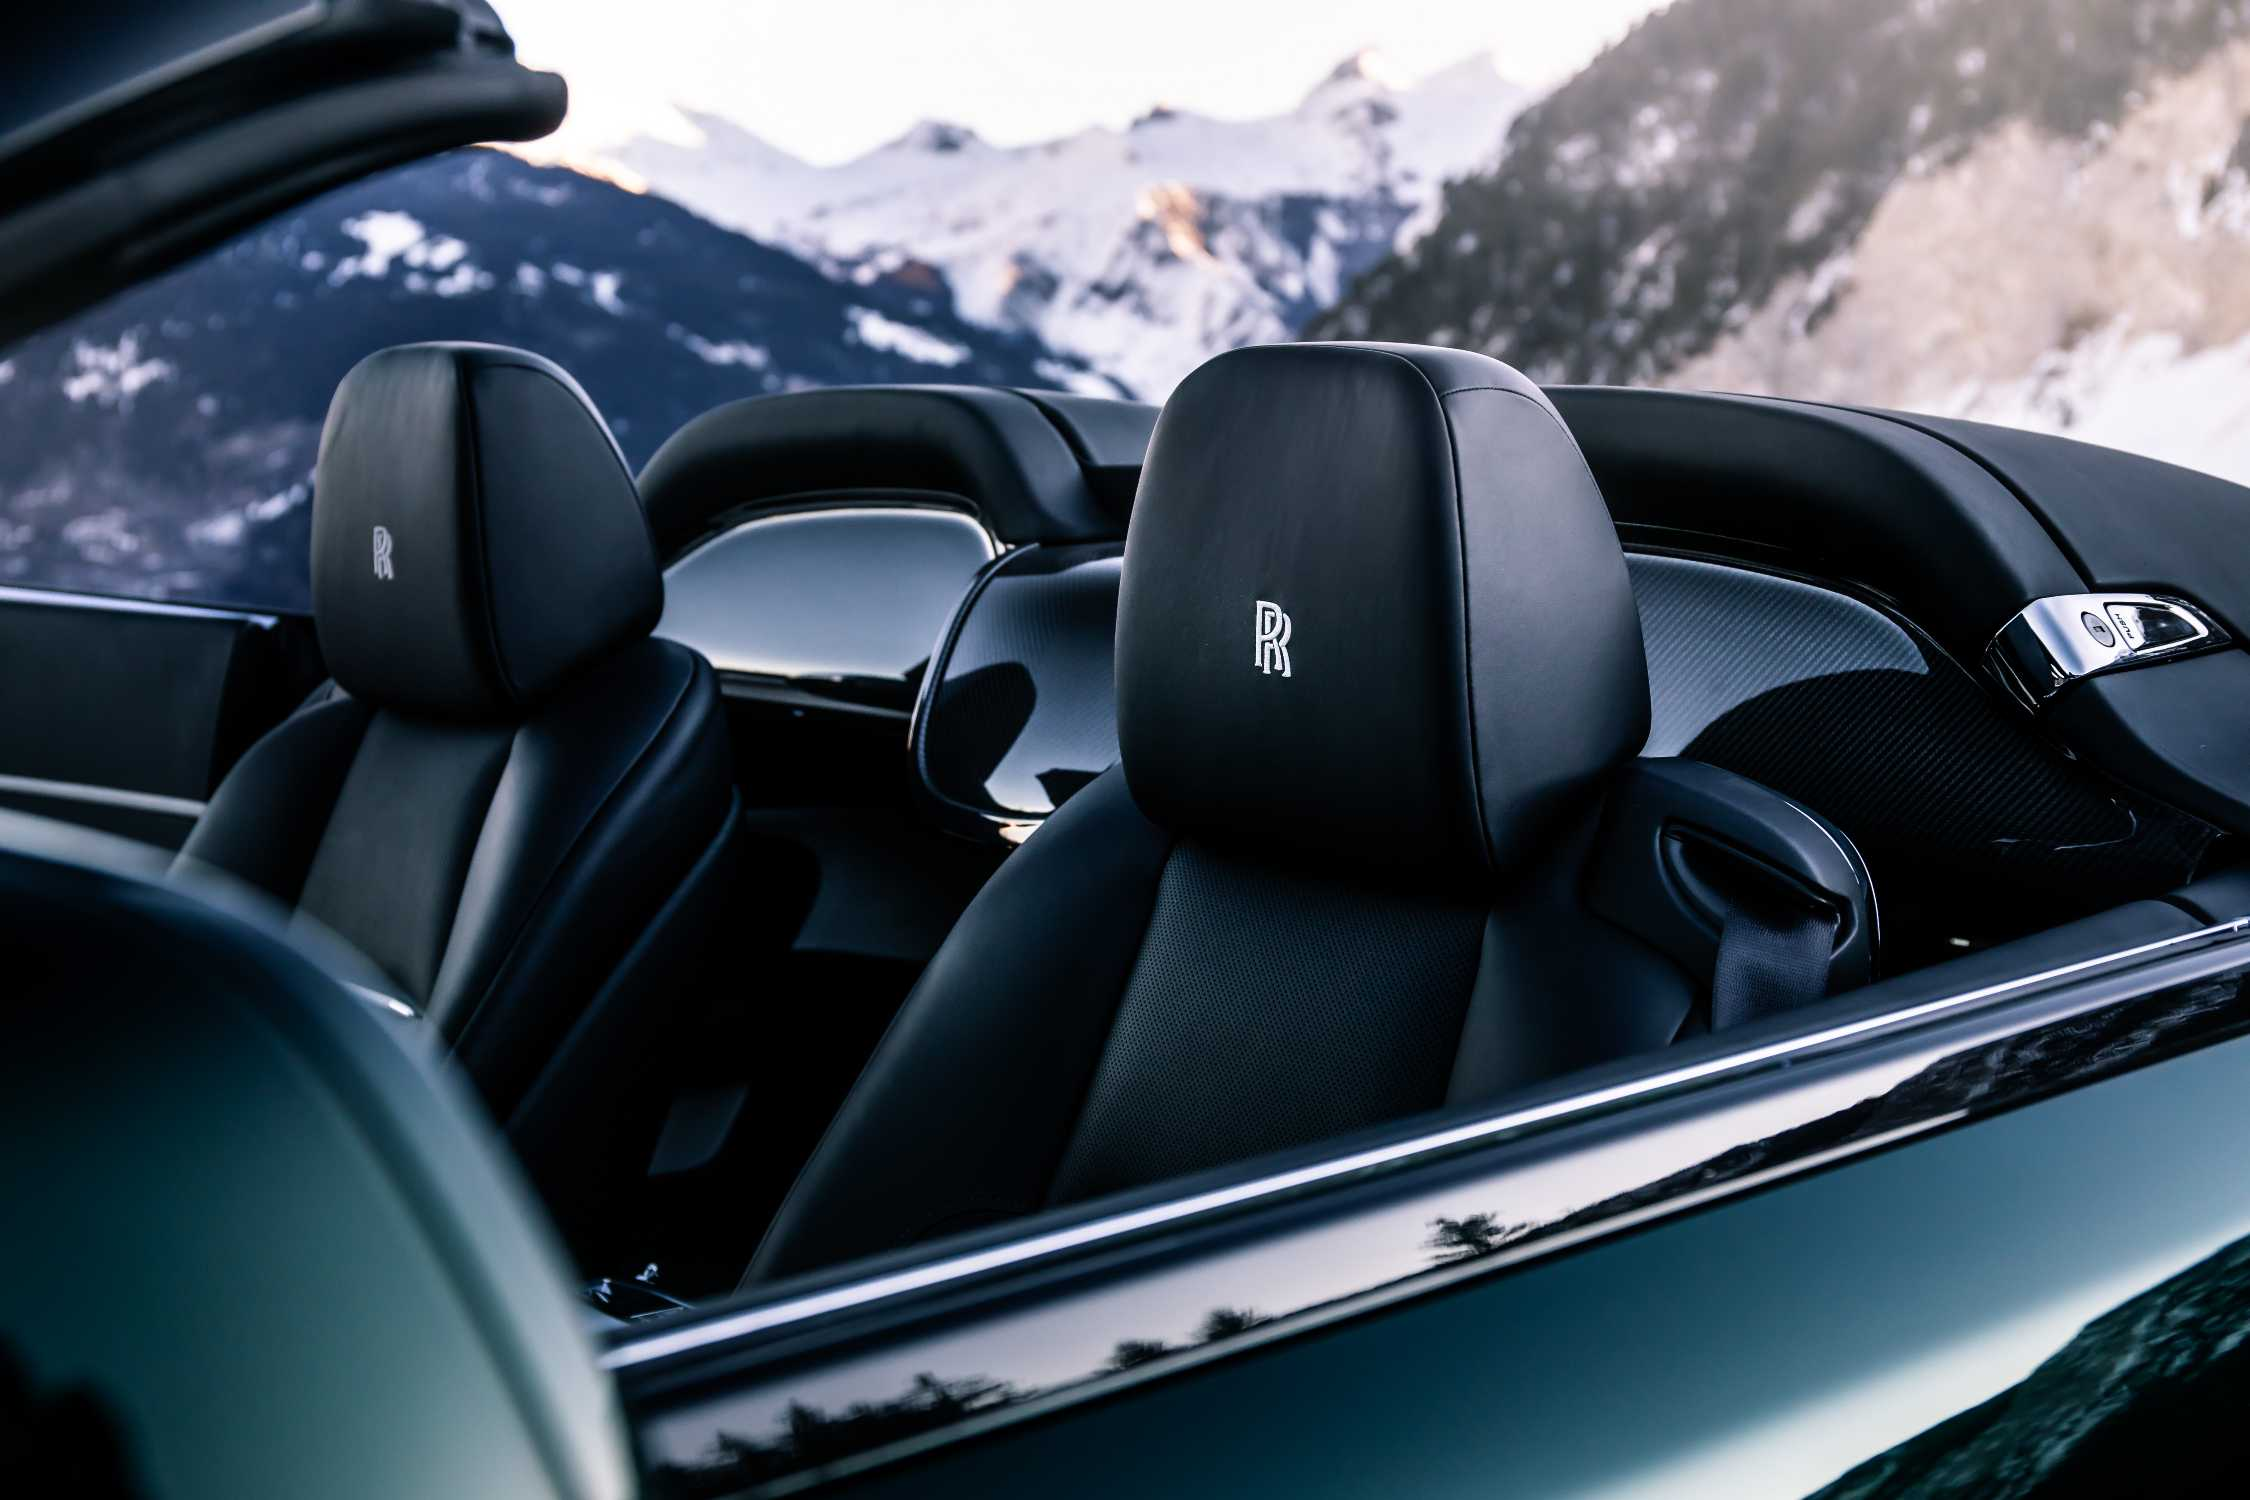 ROLLS-ROYCE MOTOR CARS' DAWN WITH INTERLINKED RR MONOGRAM EMBROIDERED INTO THE HEADRESTS